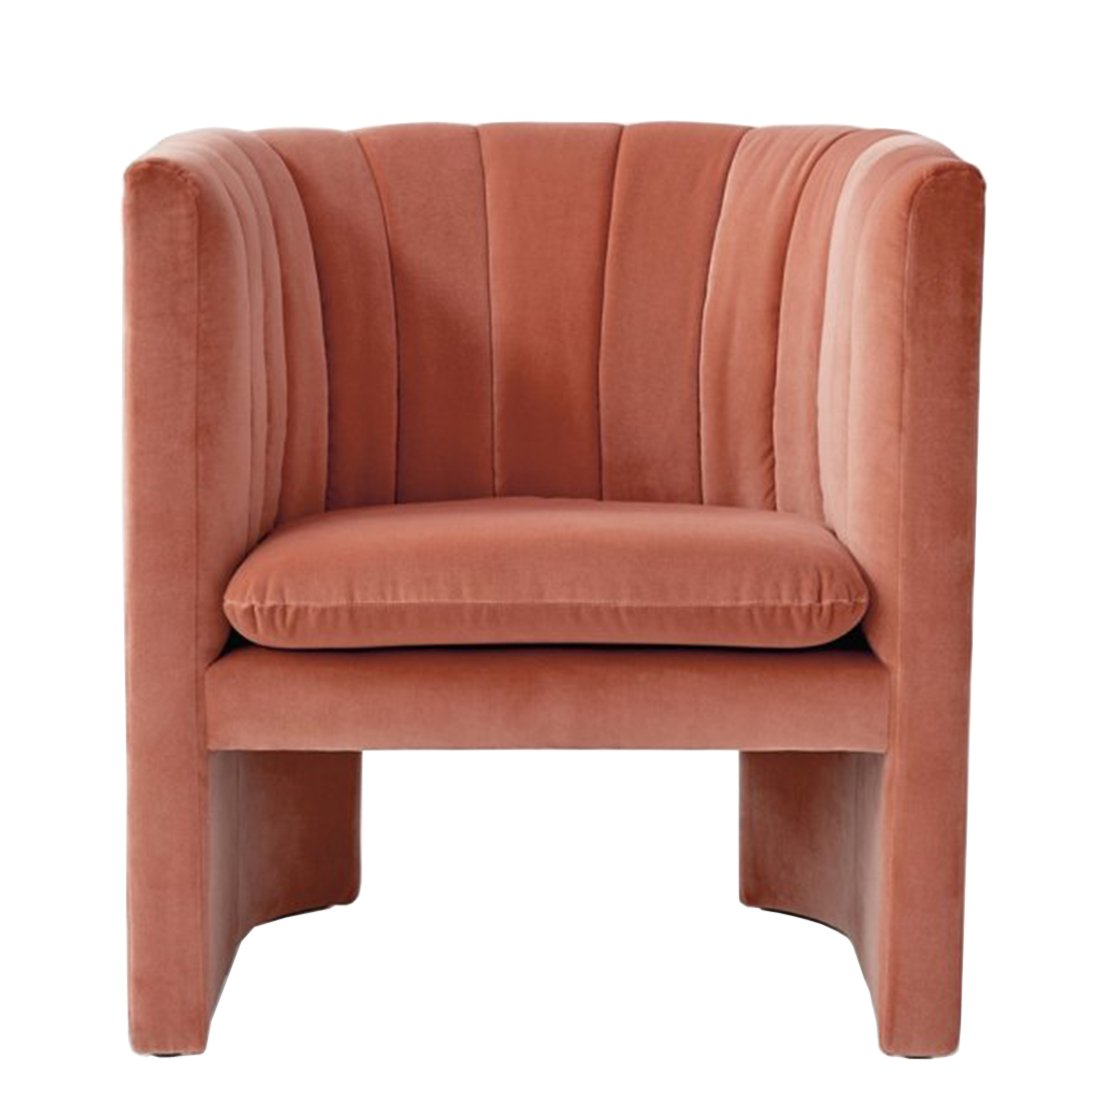 &tradition Loafer Fauteuil Space Copenhagen